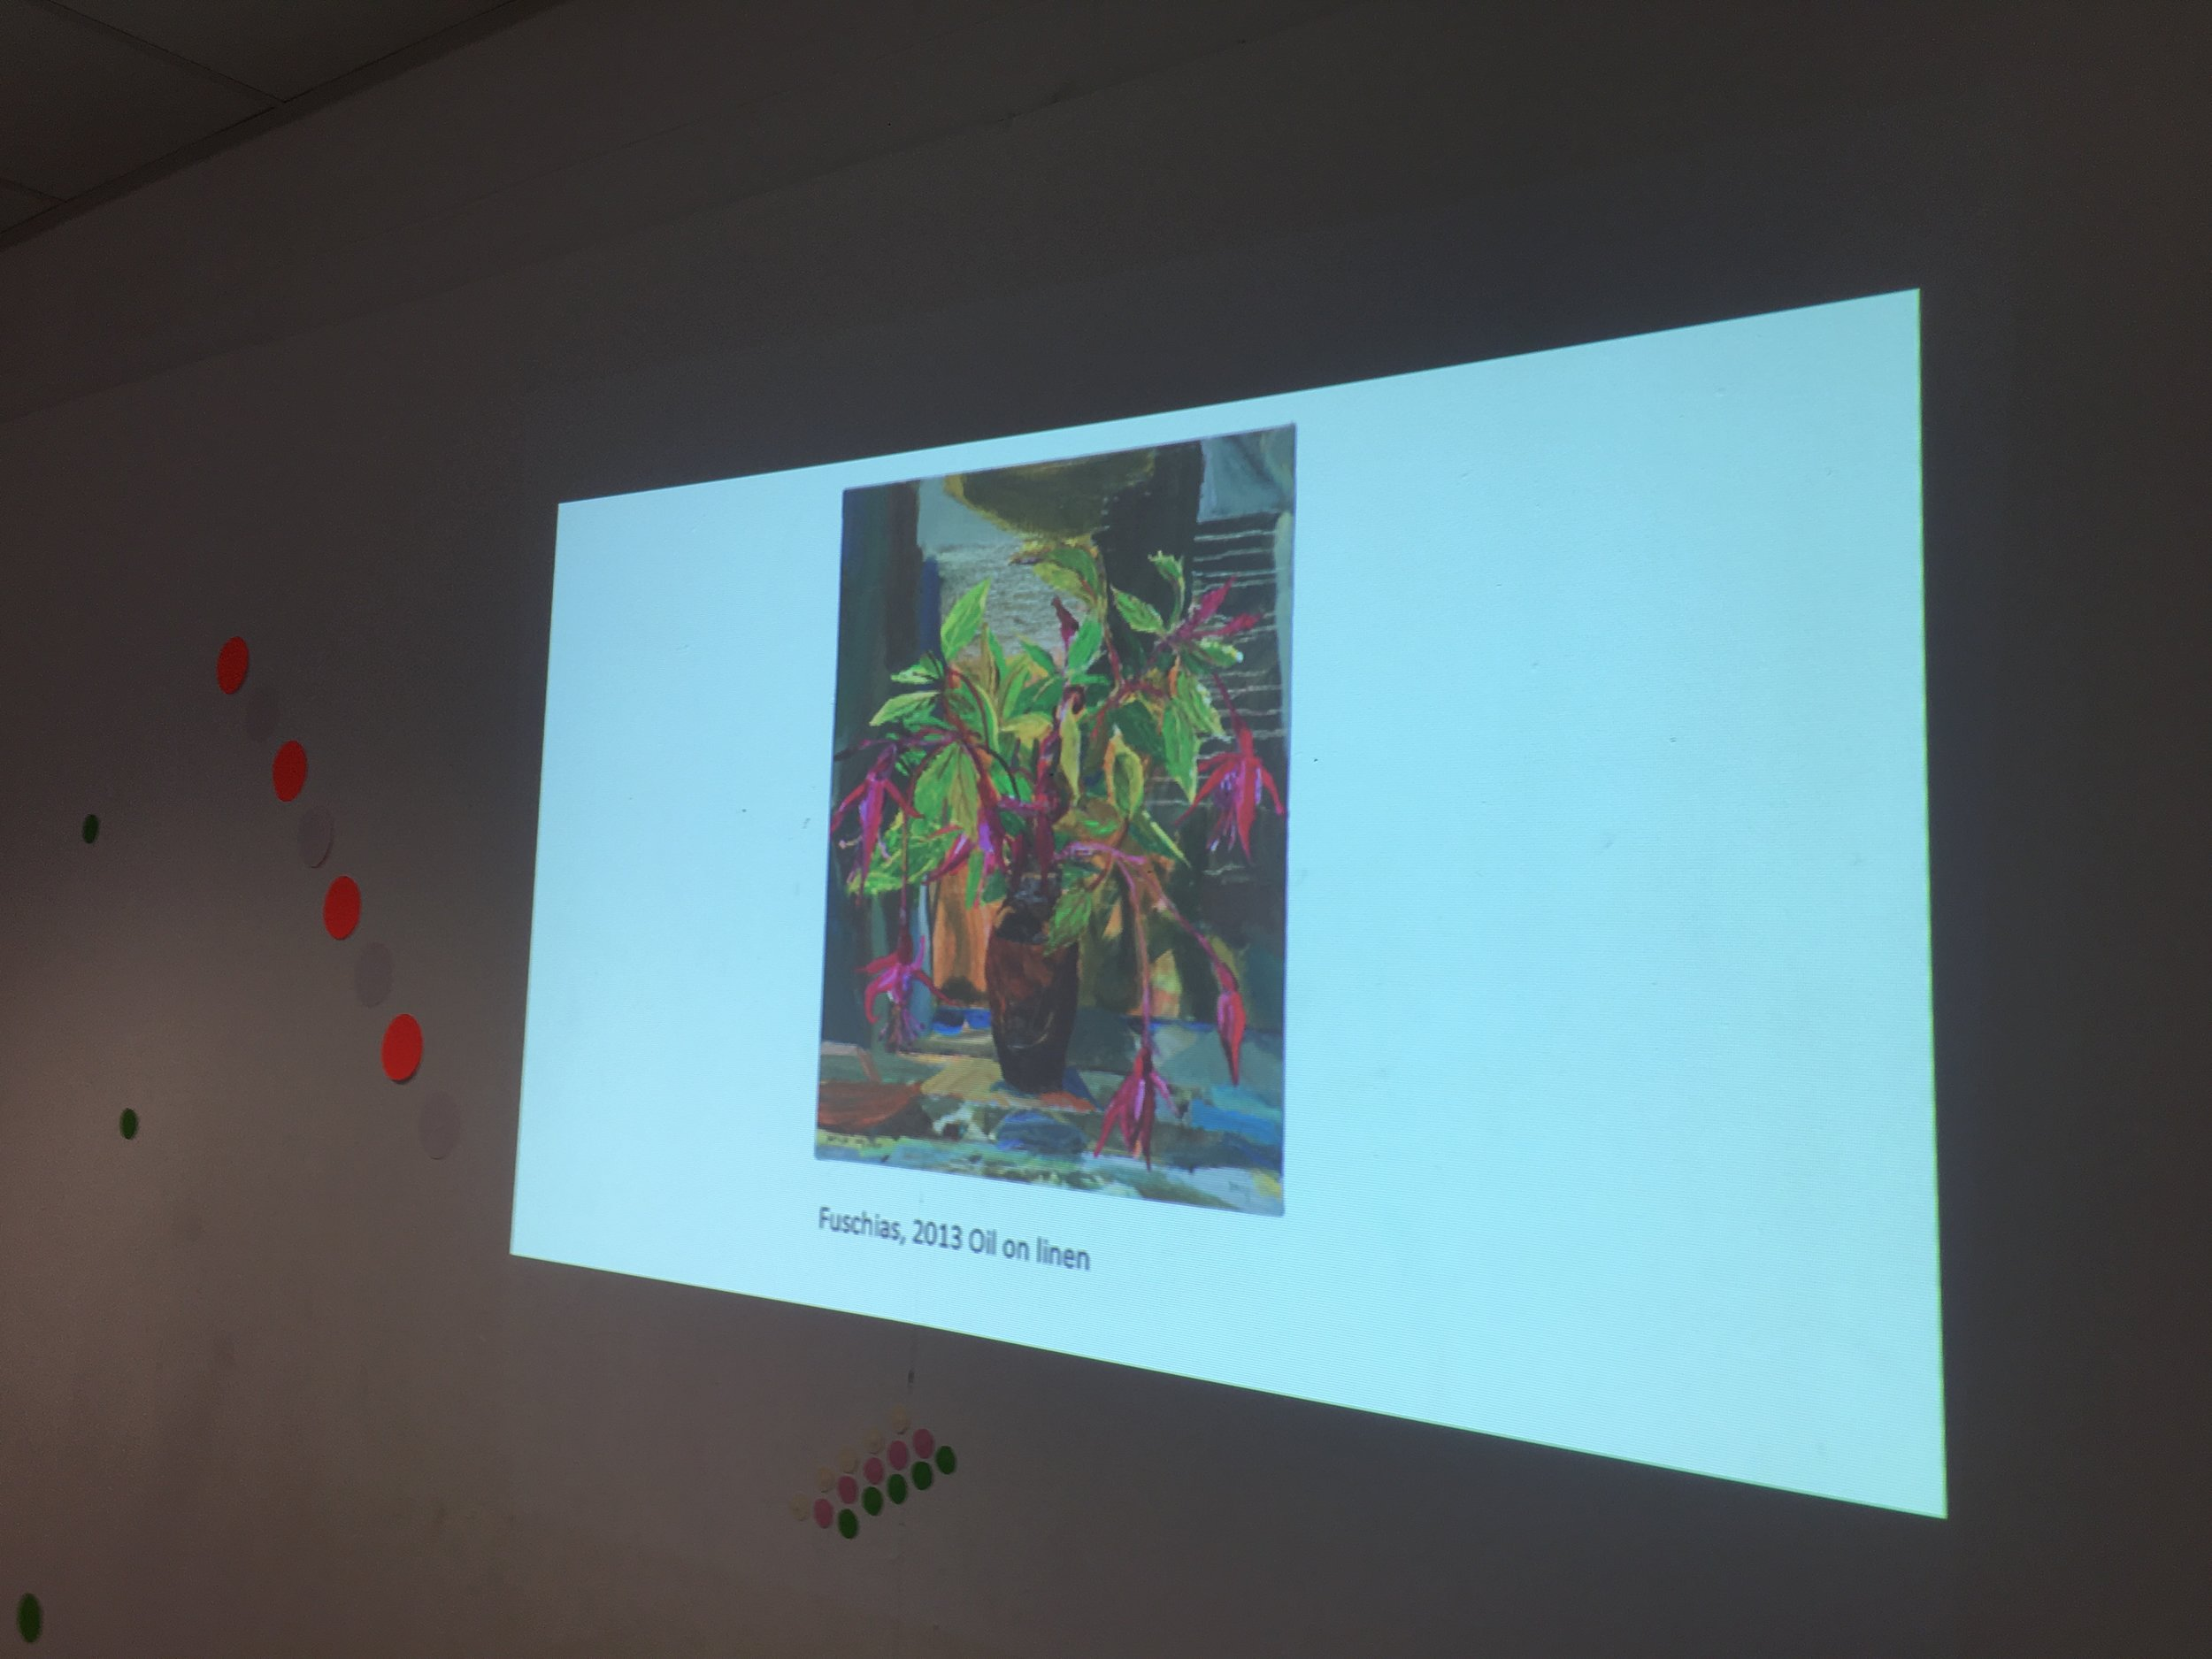 Looking at the practice of artist Nick Miller and his focus on drawing and painting plants from life